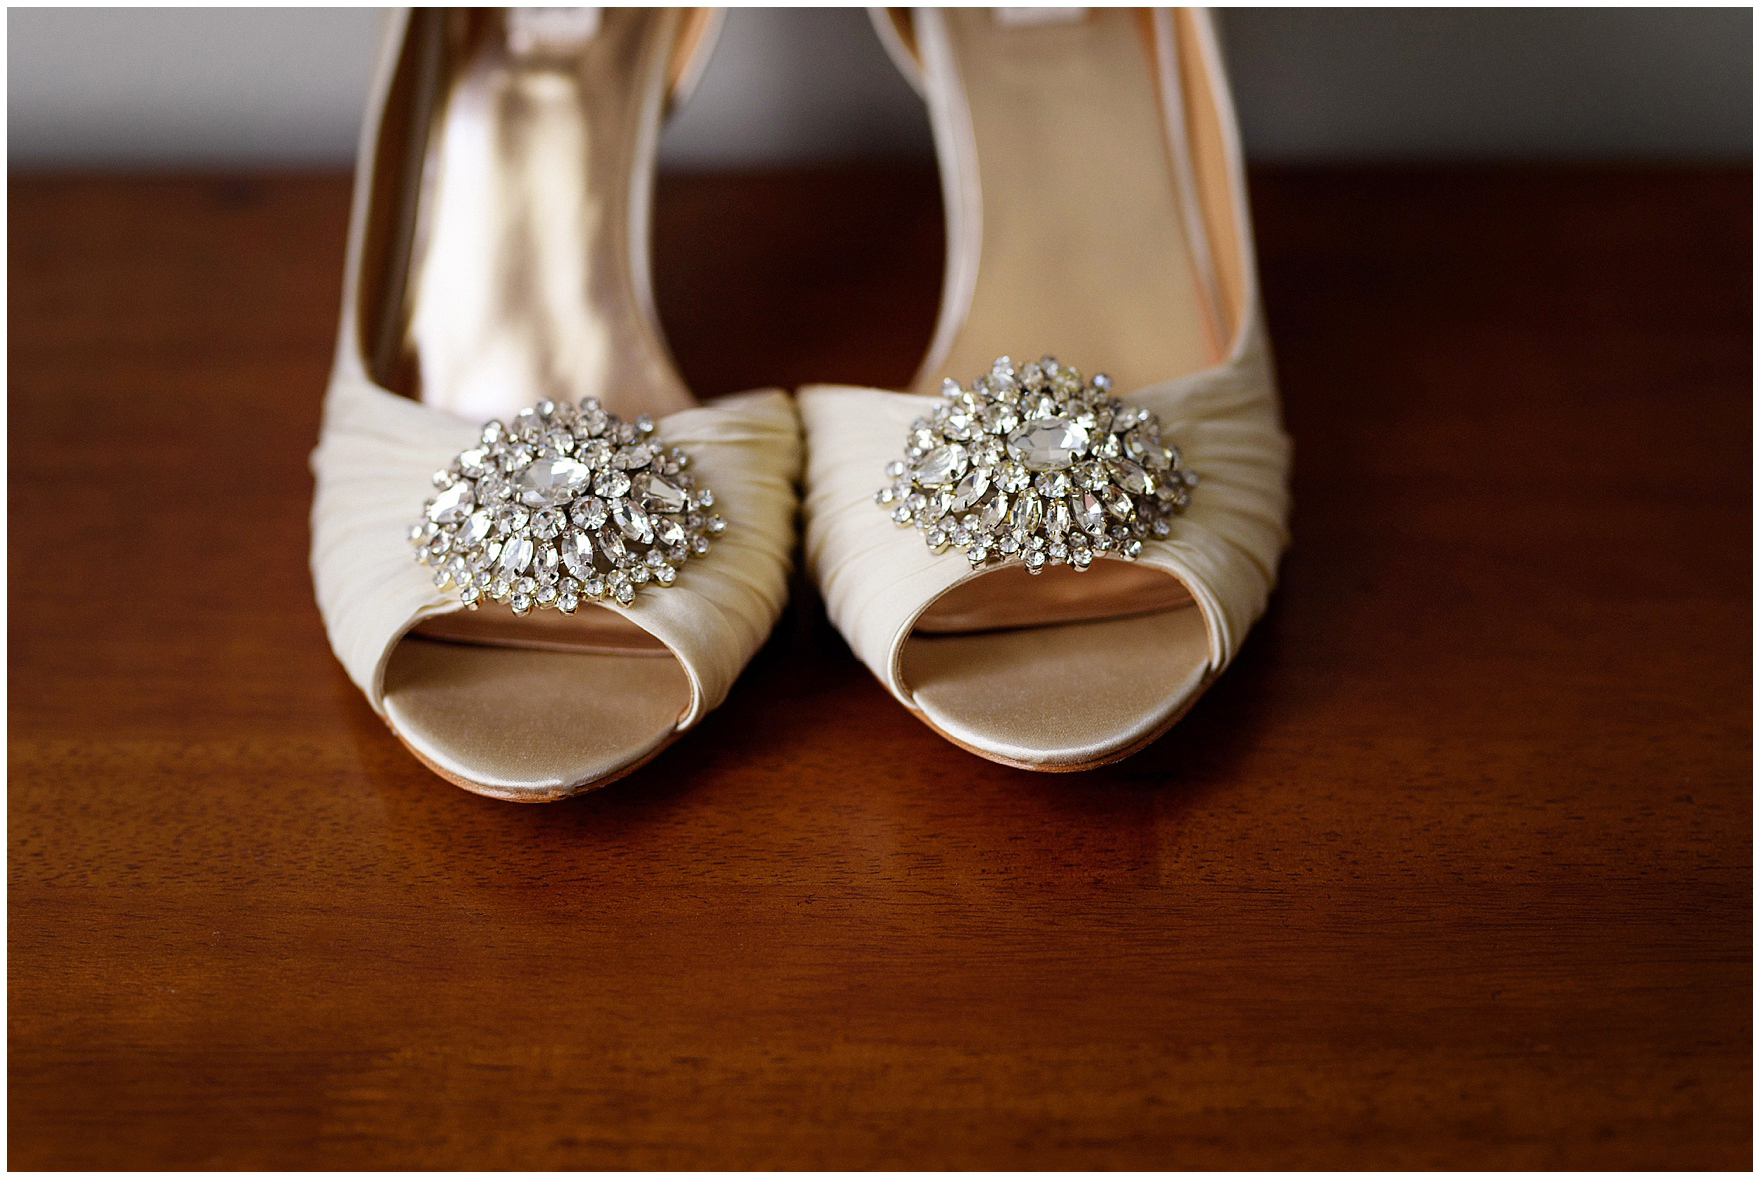 Details of jeweled D'Orsay evening shoes by Badgley Mischka before a Biltmore Country Club Barrington wedding.